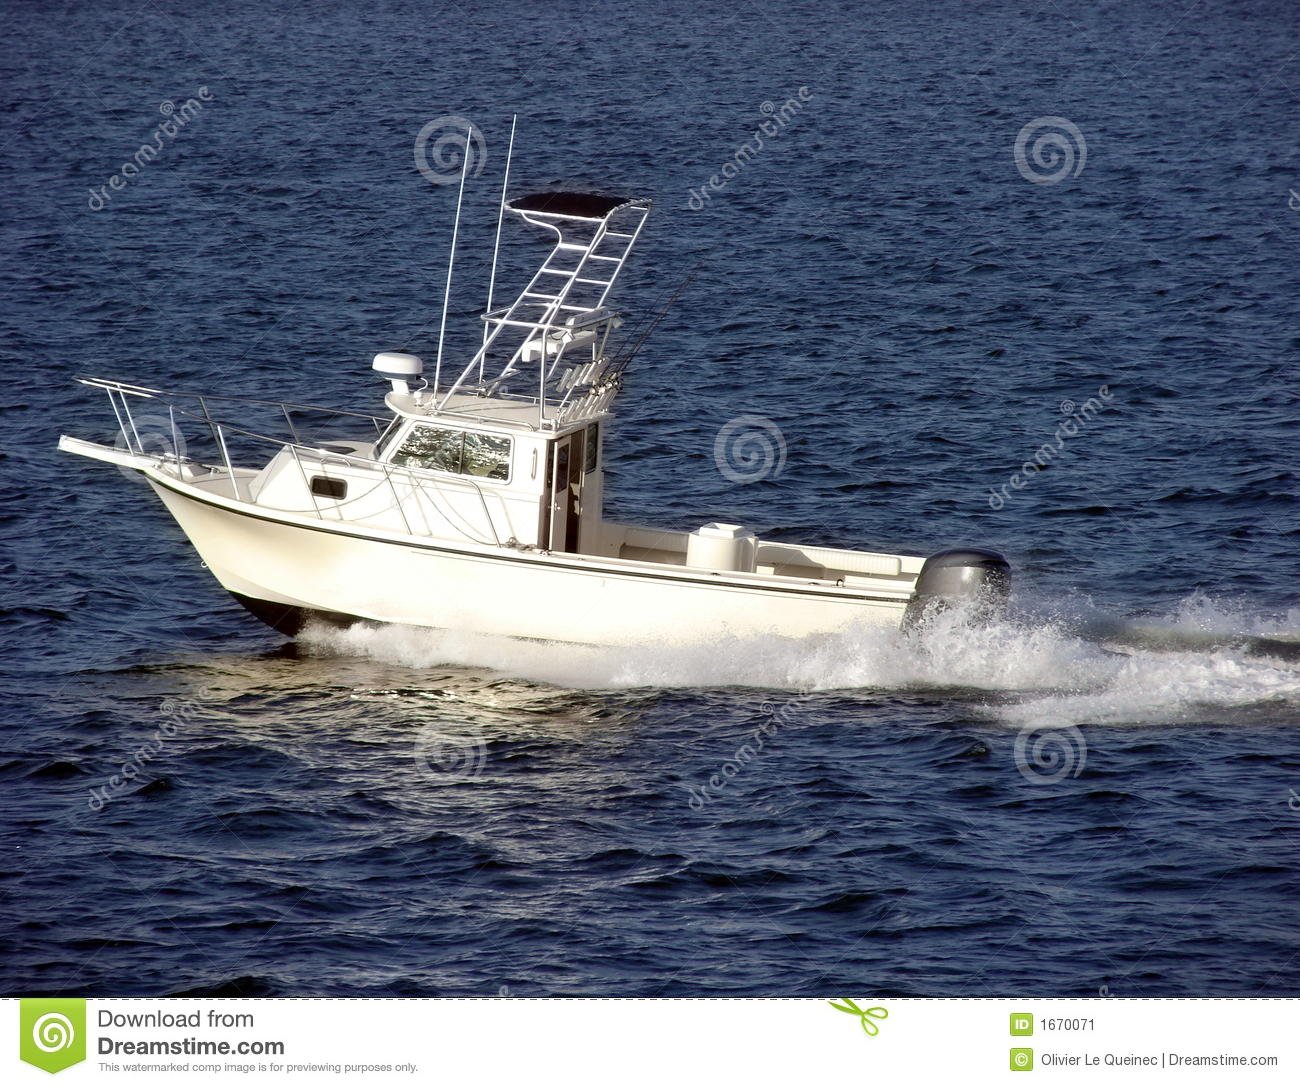 Boat fishing small 1670071 for A small fishing boat